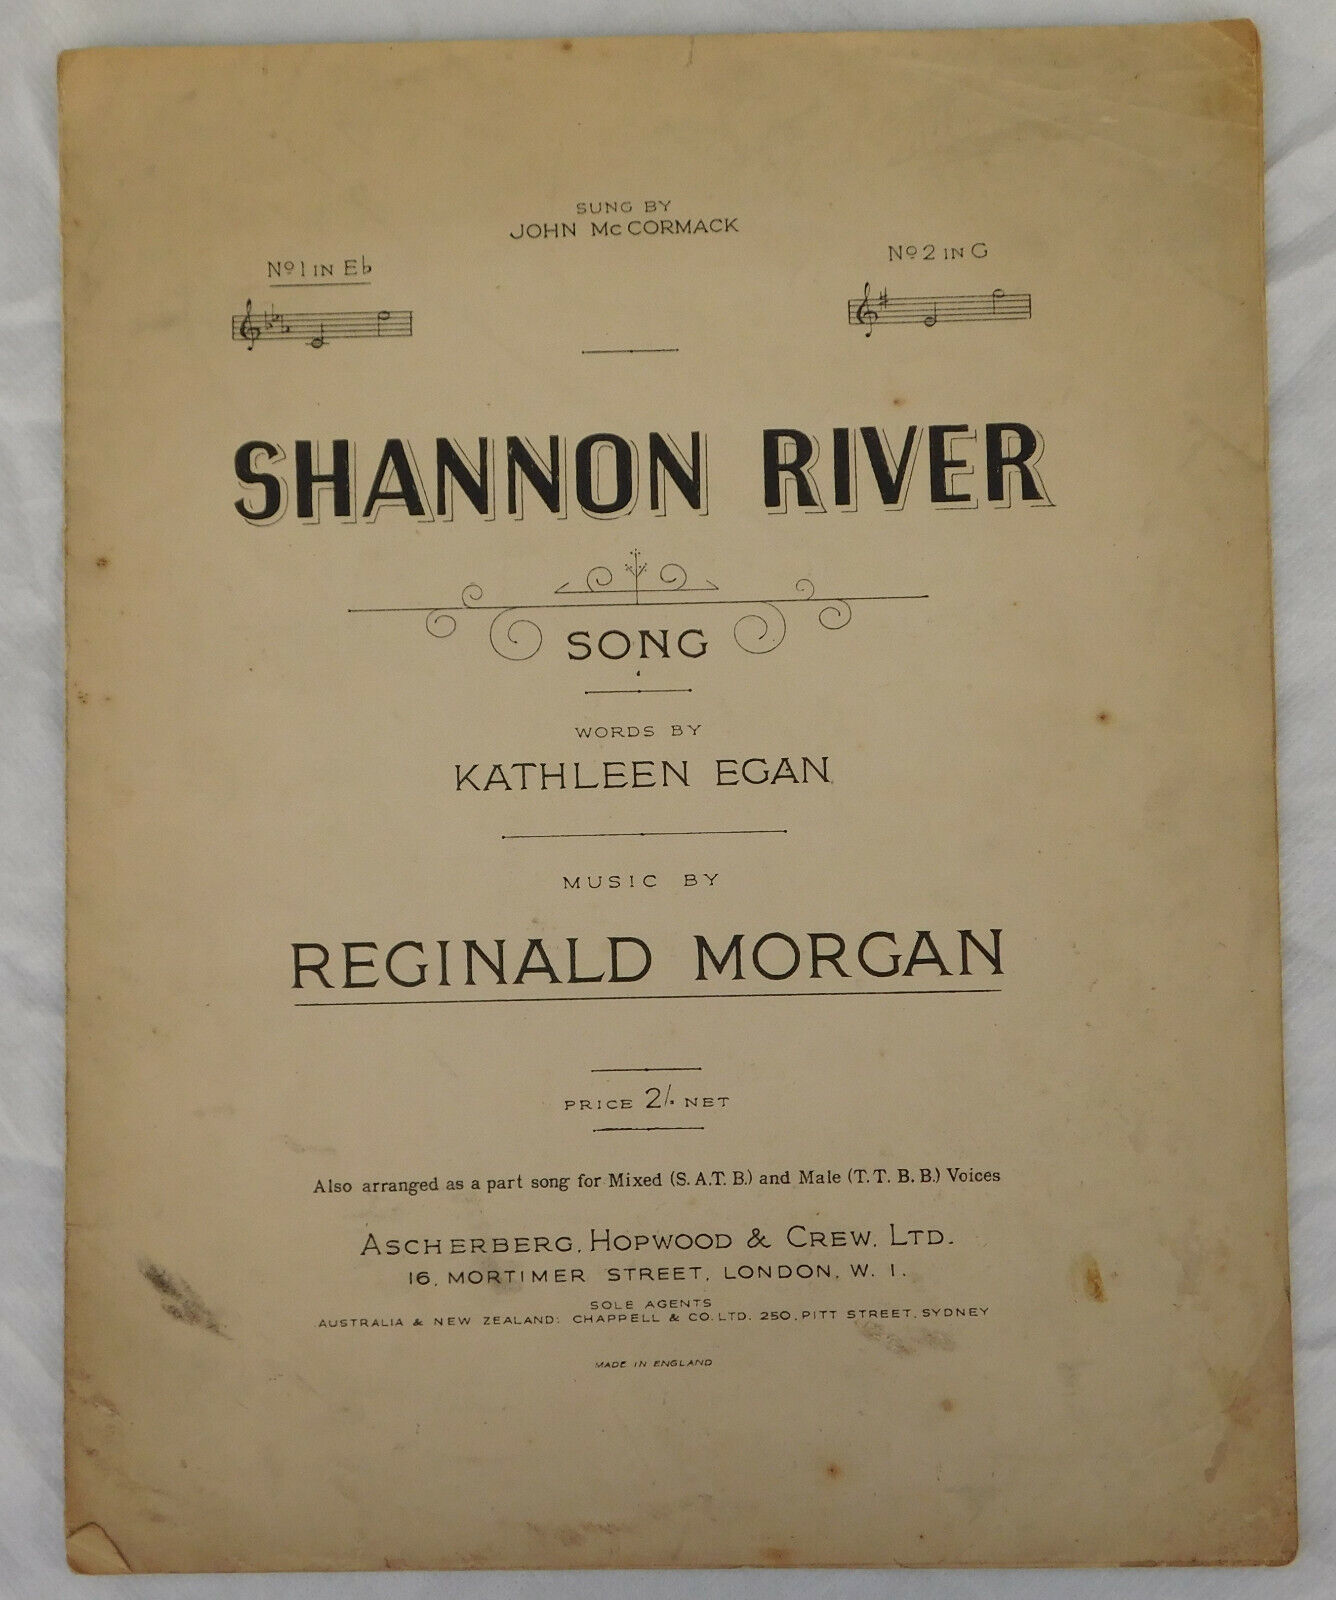 Shannon River John McCormack song vintage sheet music by Kathleen Egan R Morgan